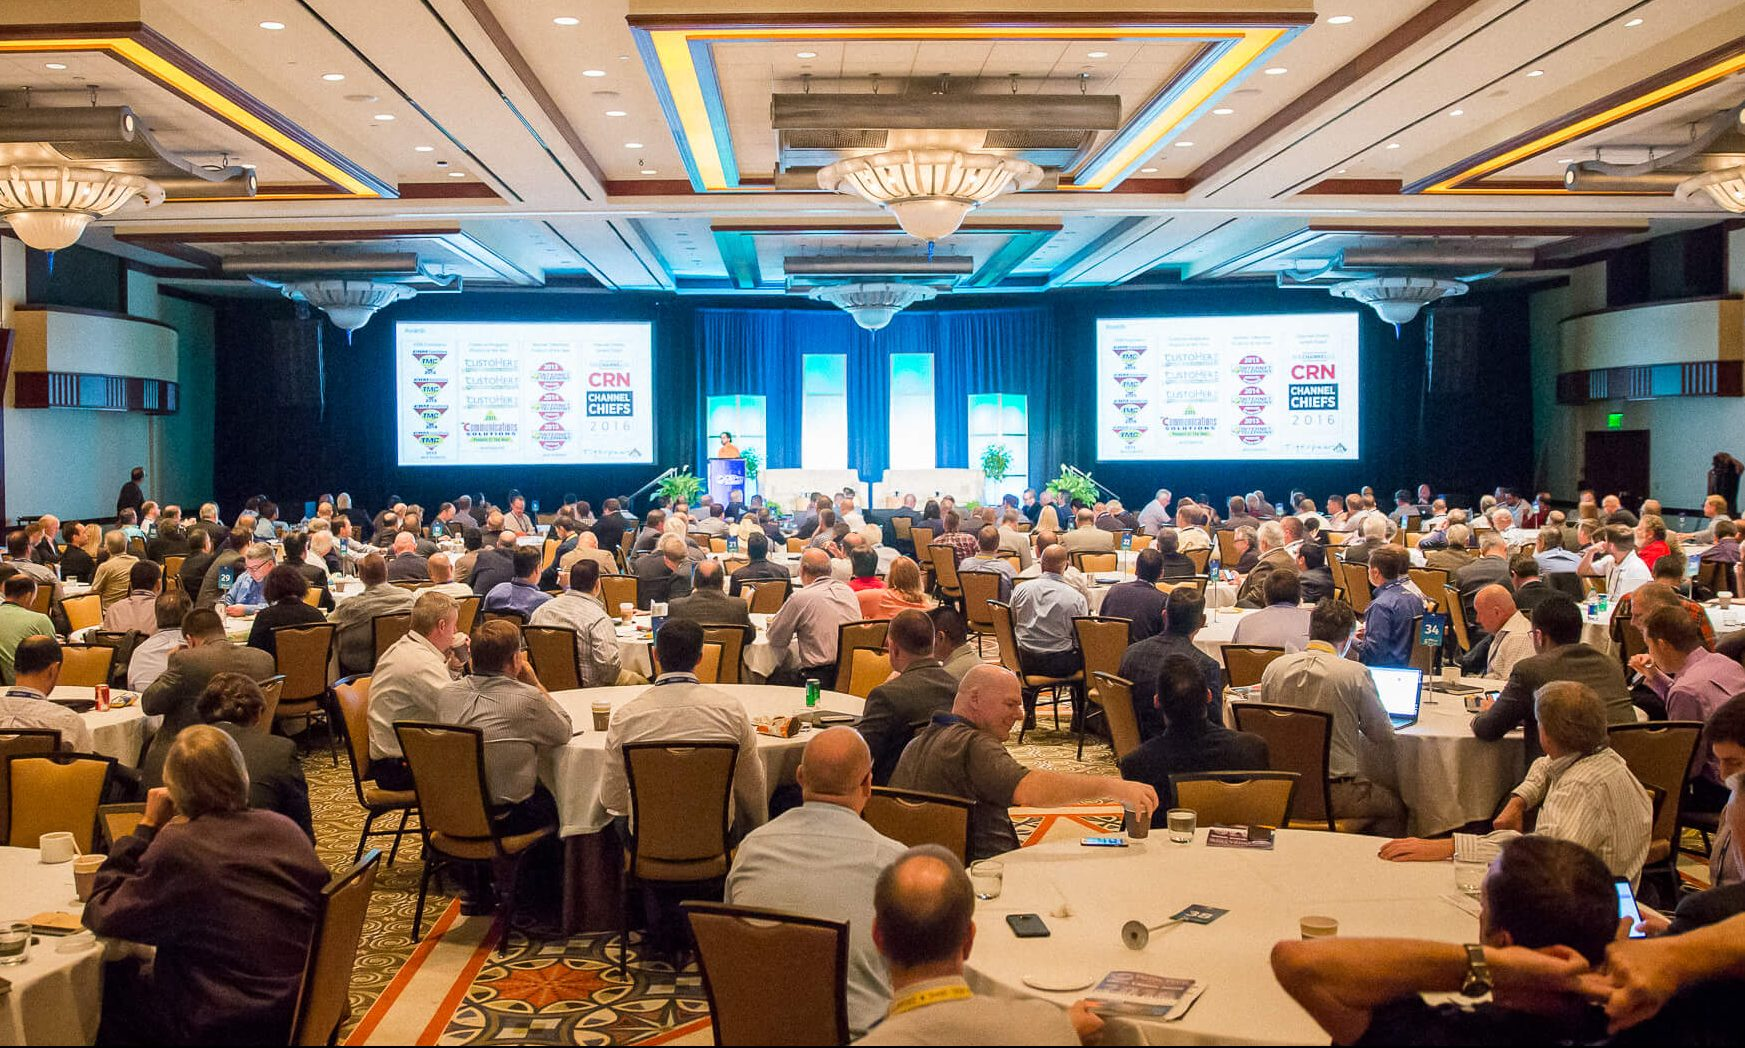 More than 400 of the top integrators from around the country will learn from industry experts in educational sessions.